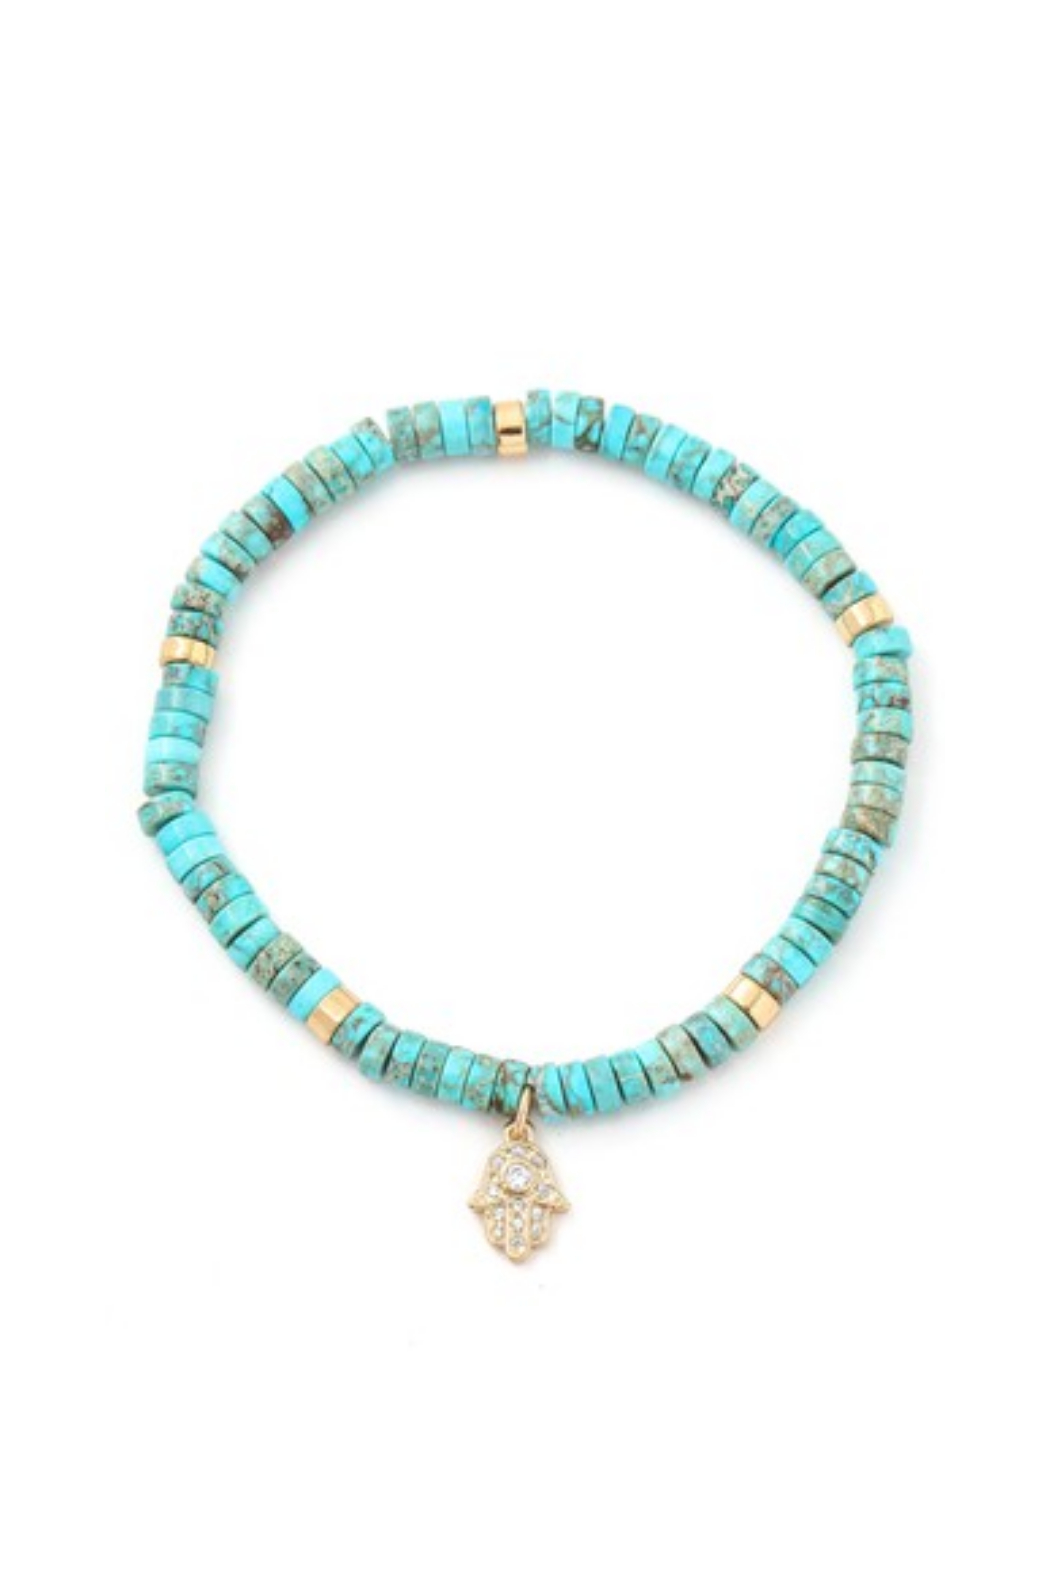 Fame Accessories Turquoise Stone Beaded Hamsa Hand Charm Bracelet - Main Image